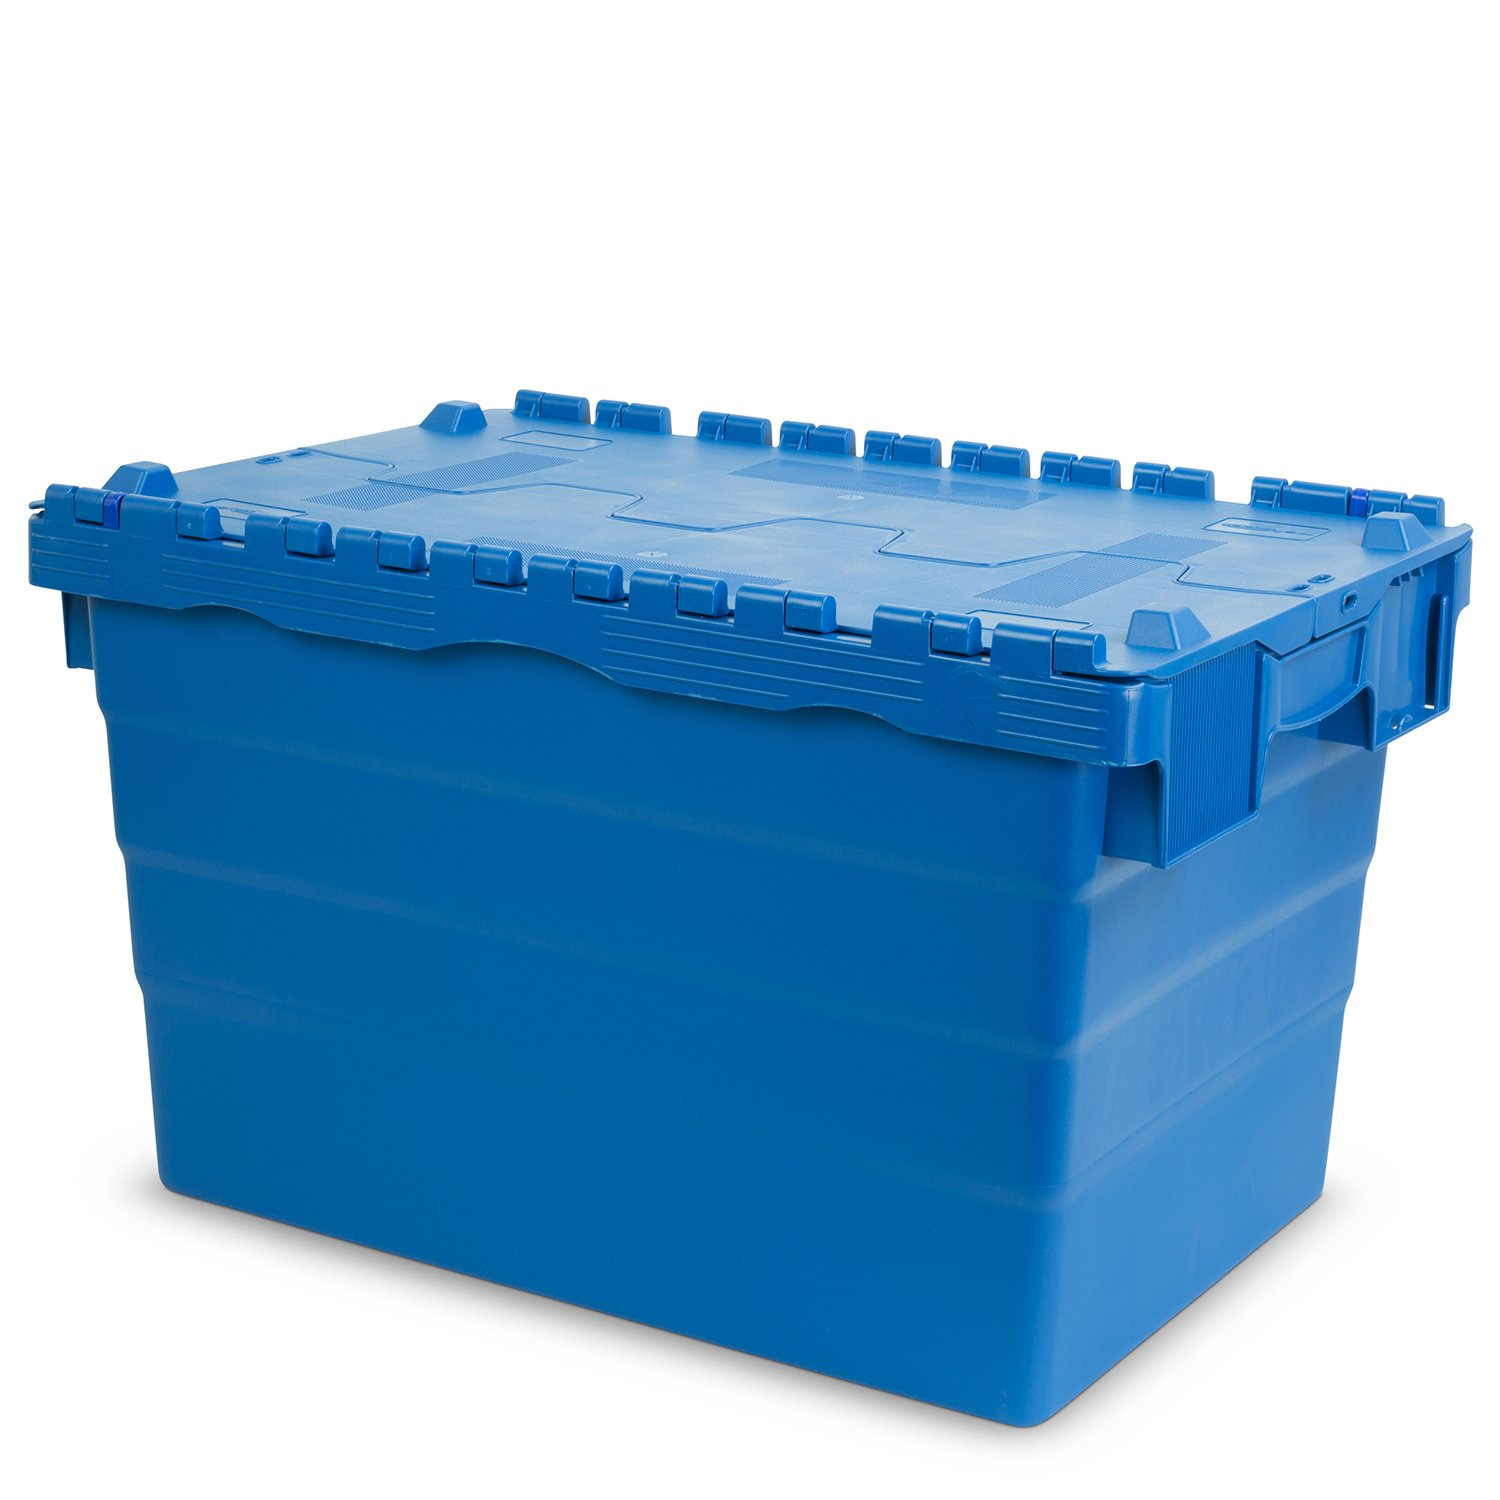 Hans Schourup 22600461 Reusable Container with Hinged Lid, 600 mm x 400 mm x 365 mm, blue 600mm x 400mm x 365mm